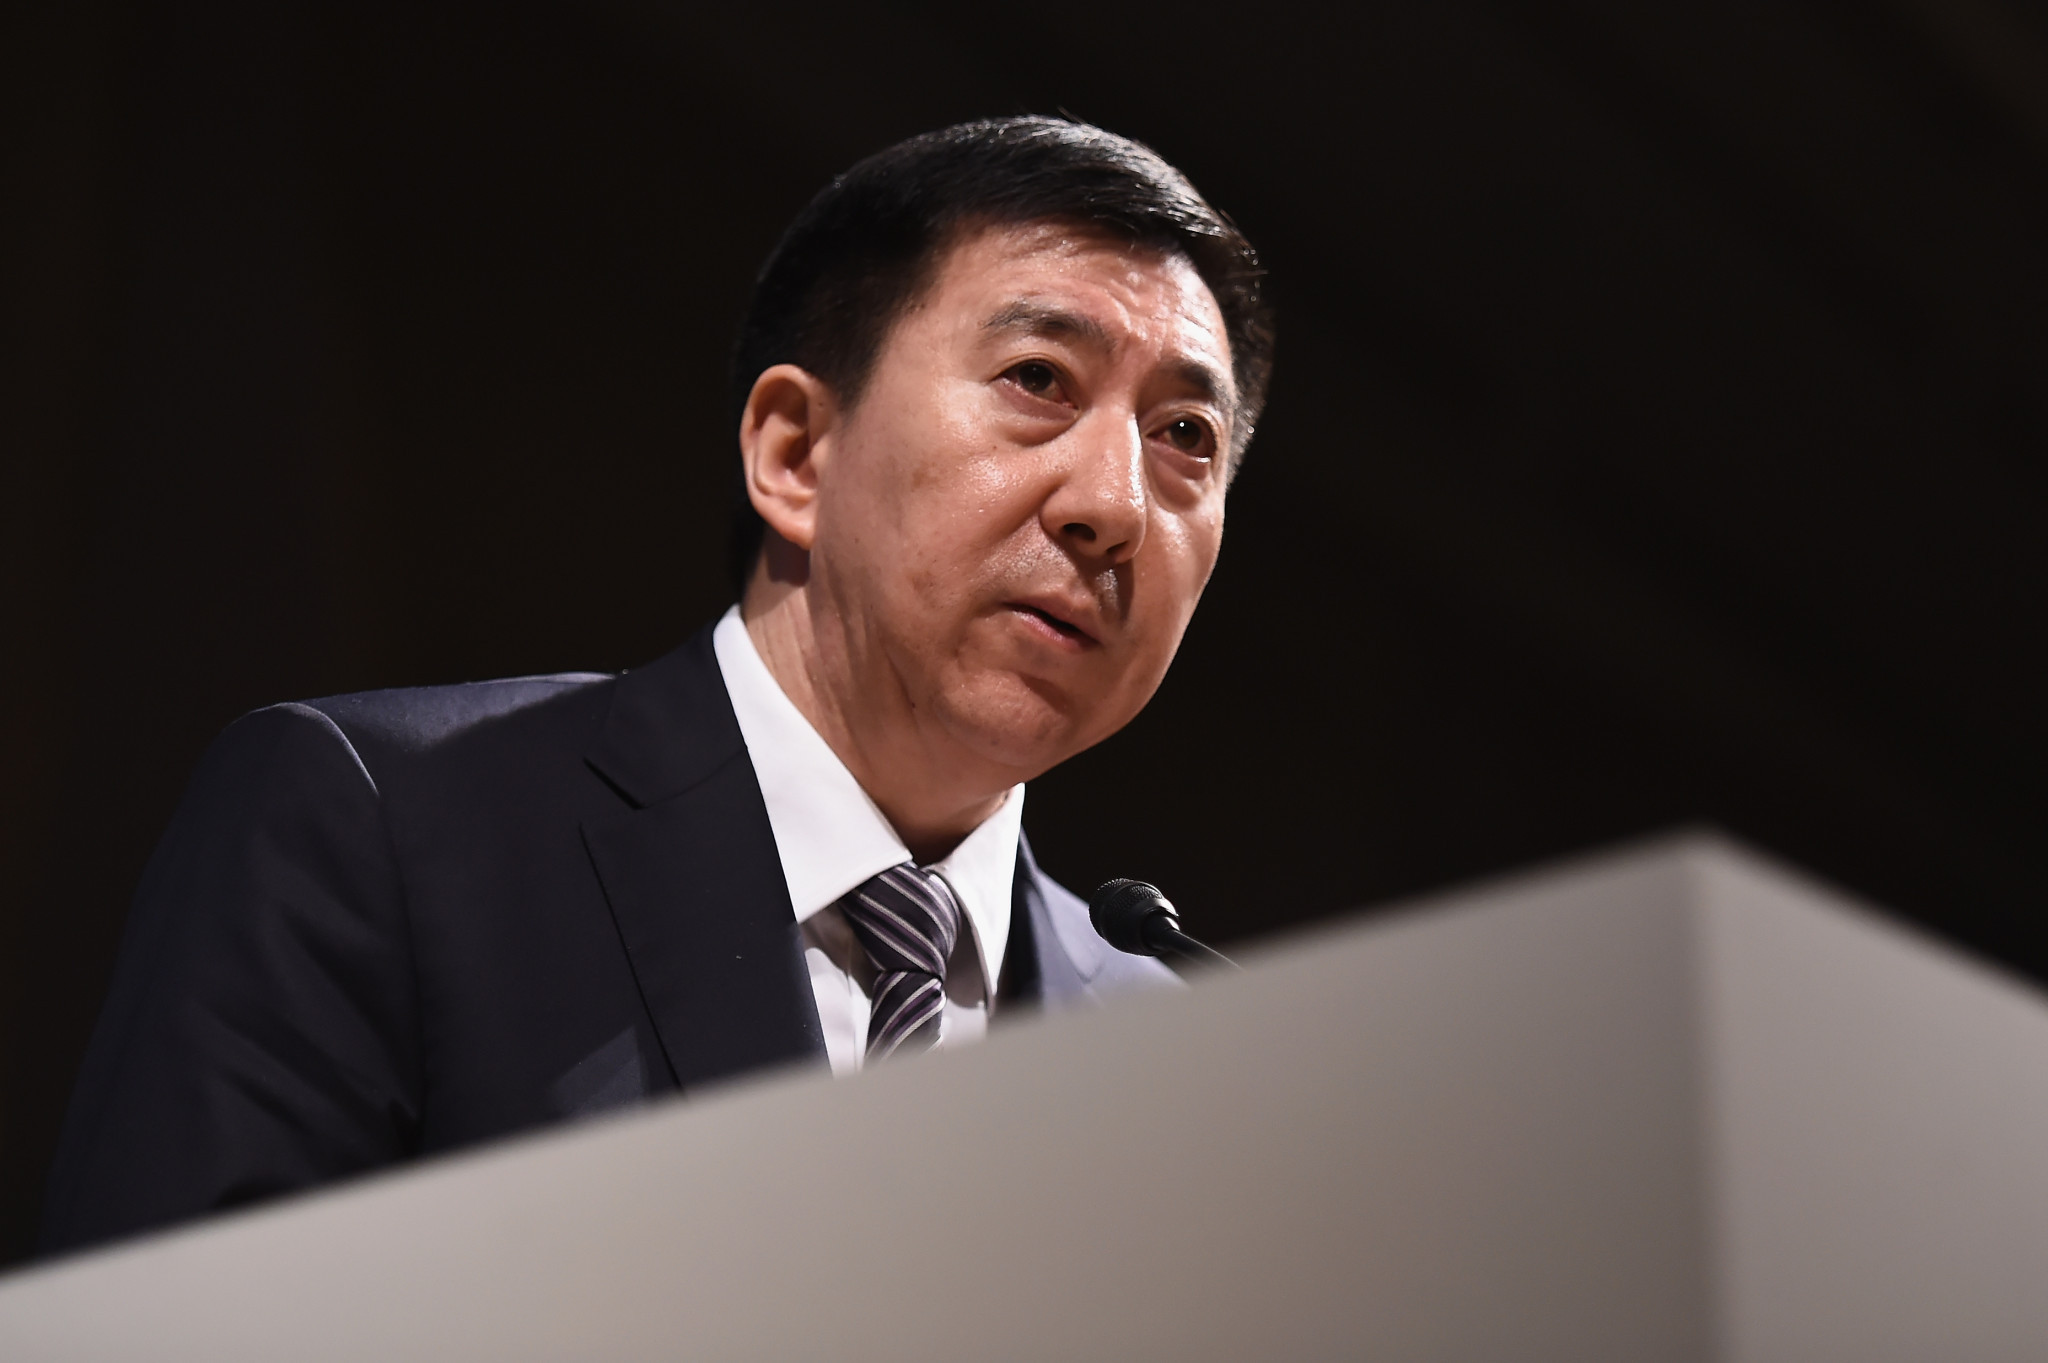 Beijing 2022 executive vice-president Zhang Jiandong claimed a high standard of preparation has been maintained despite the impact of the coronavirus pandemic ©Getty Images